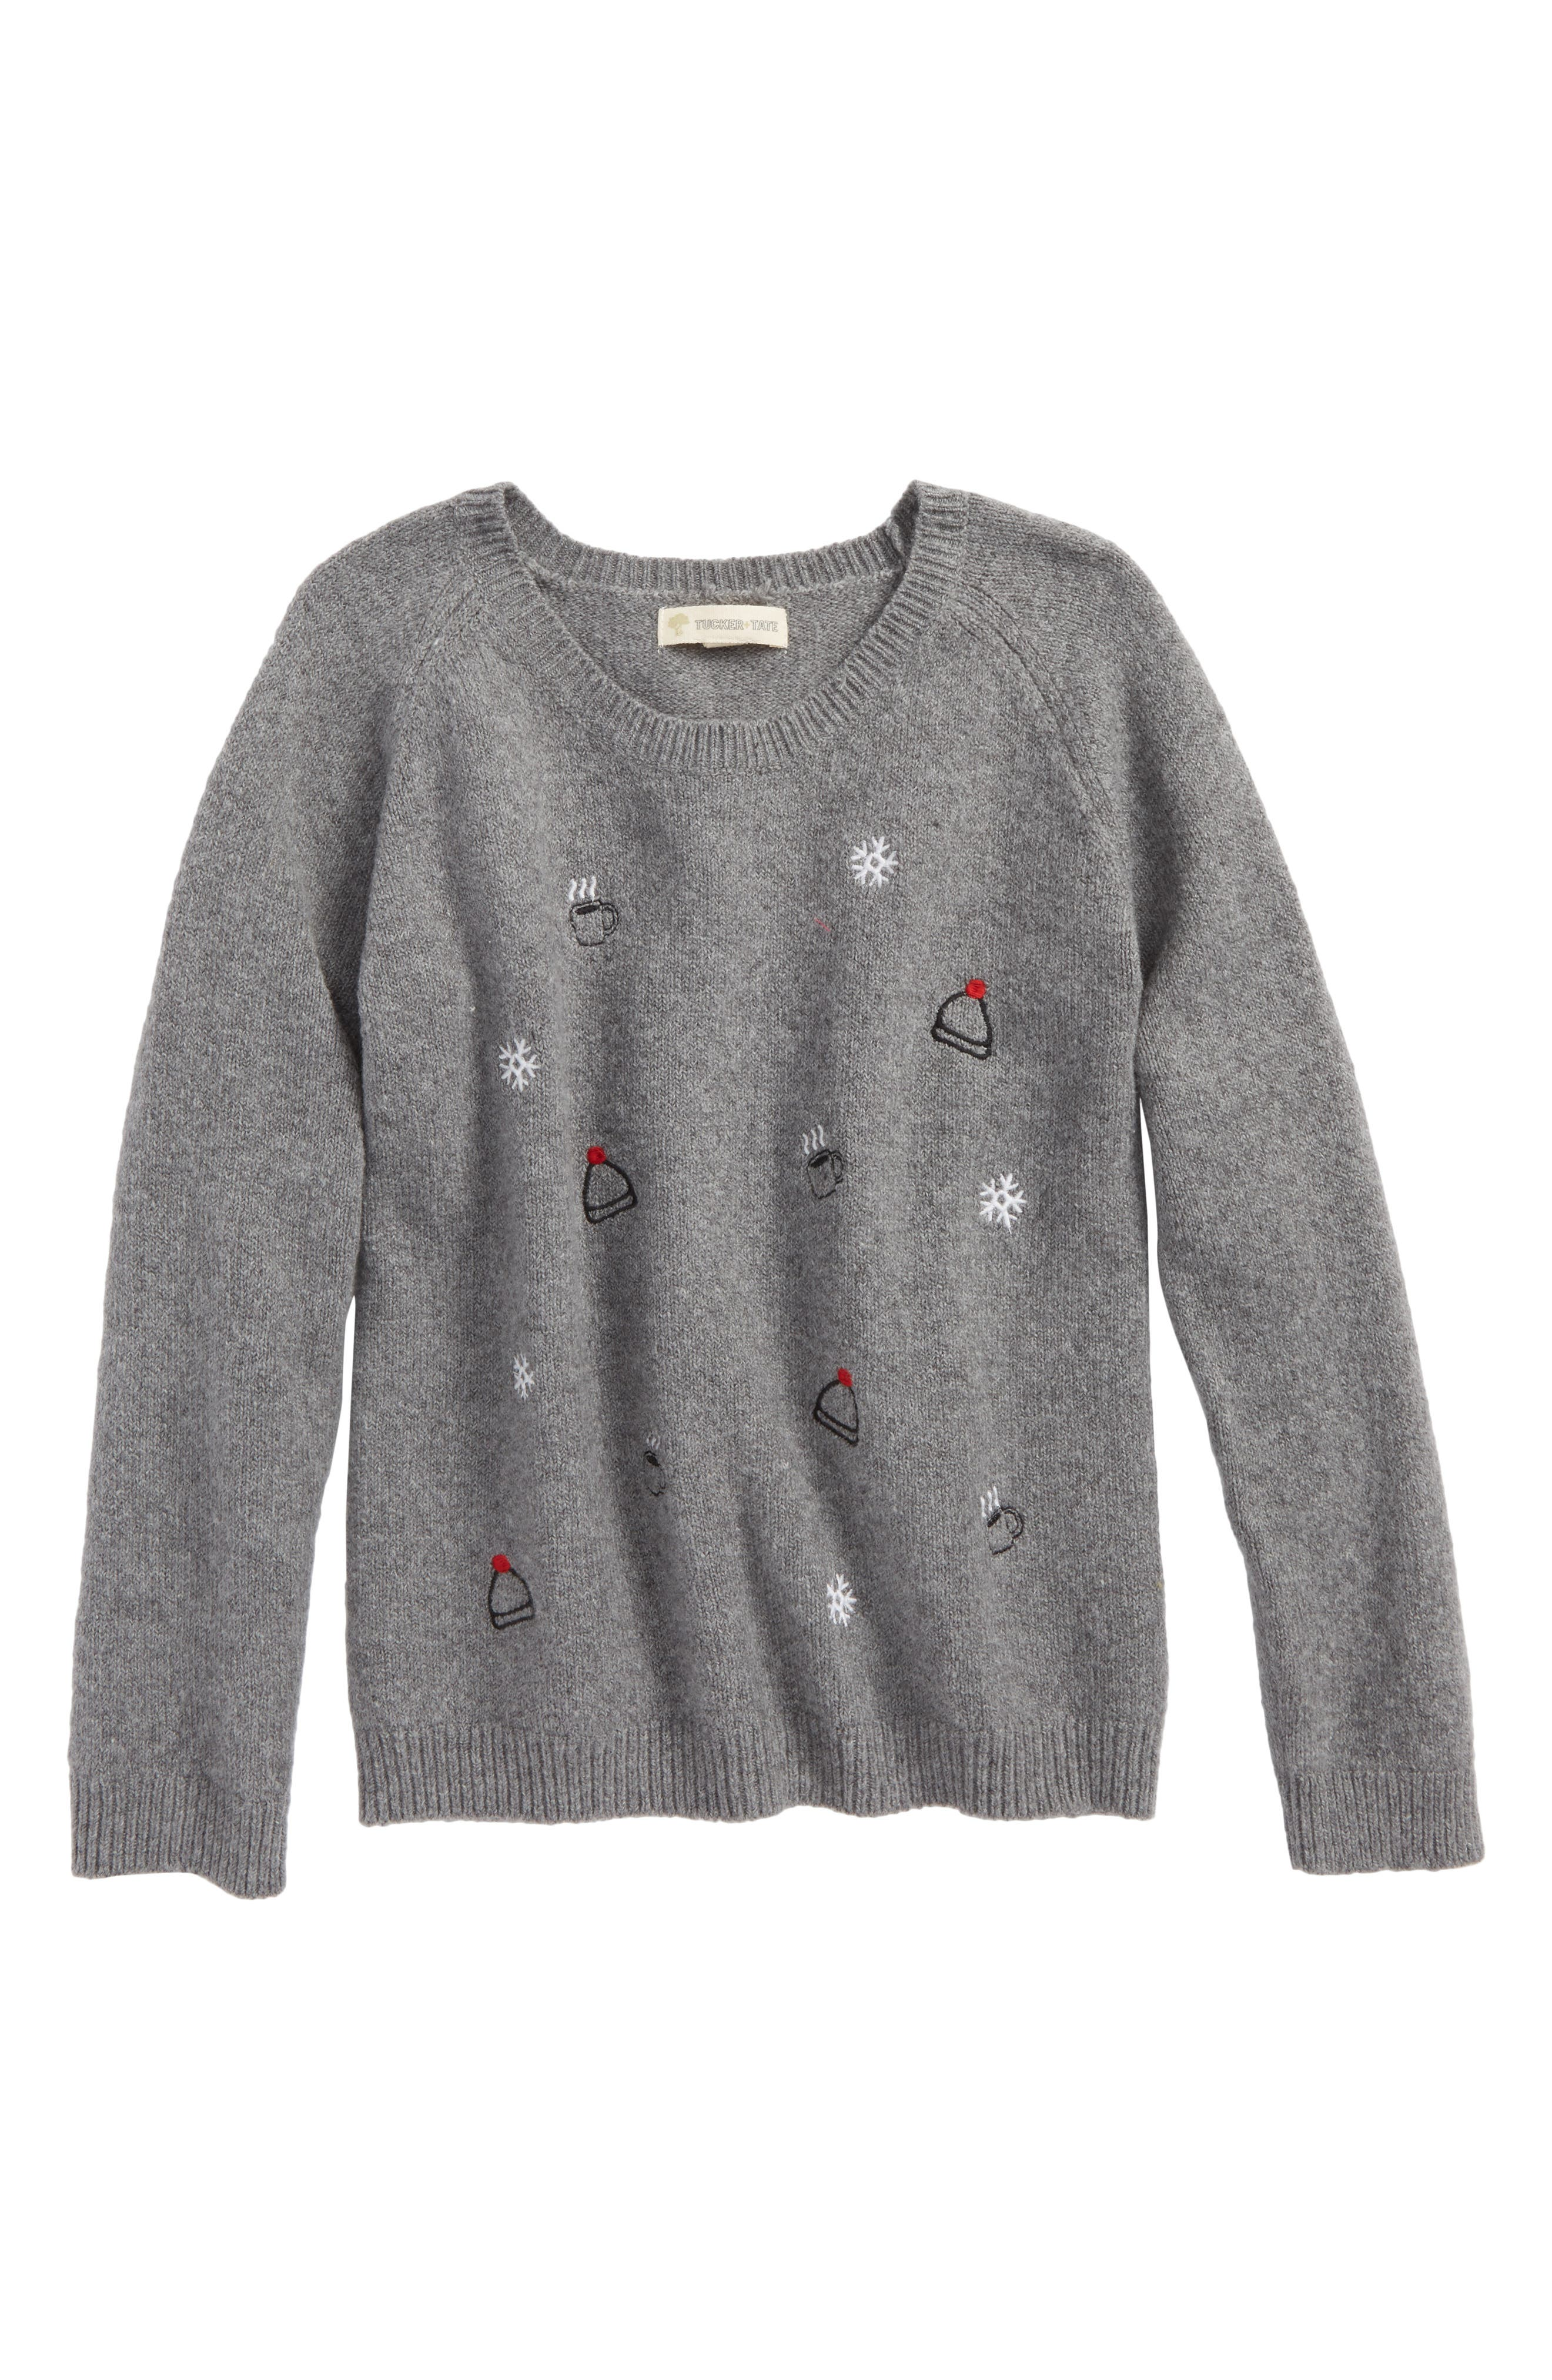 Embroidered Sweater,                         Main,                         color, 030